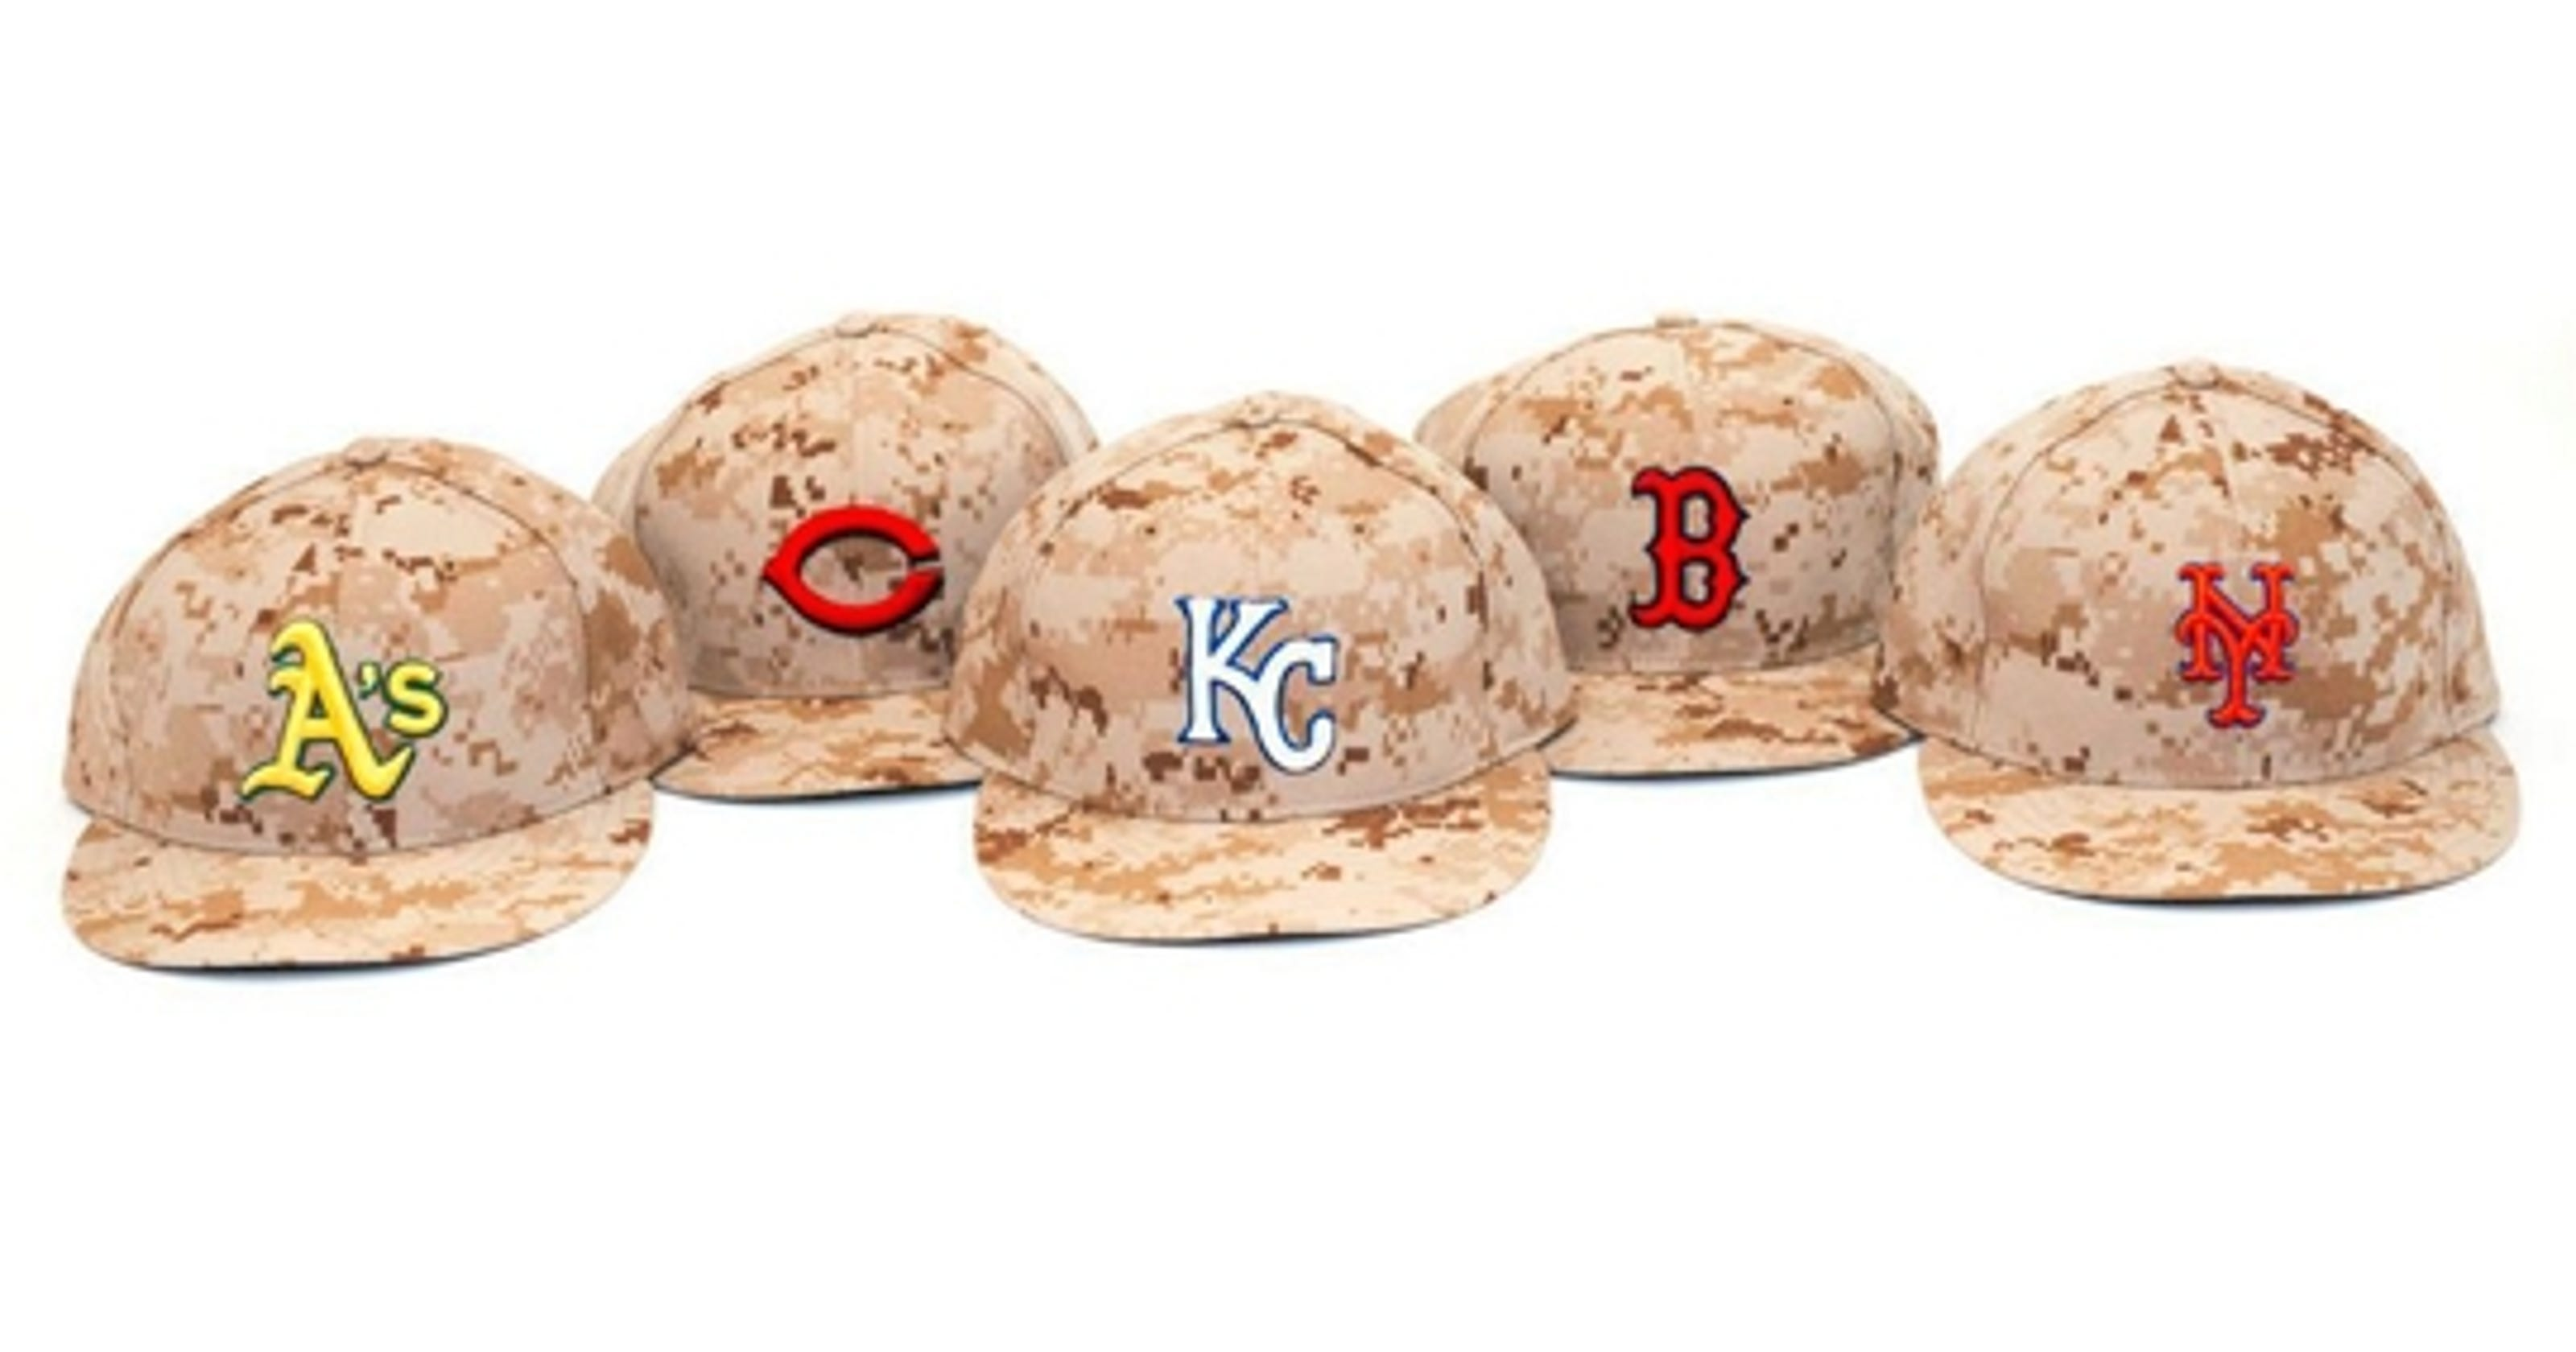 MLB teams will wear camouflage hats to honor veterans on Memorial Day 5c1f309b47a